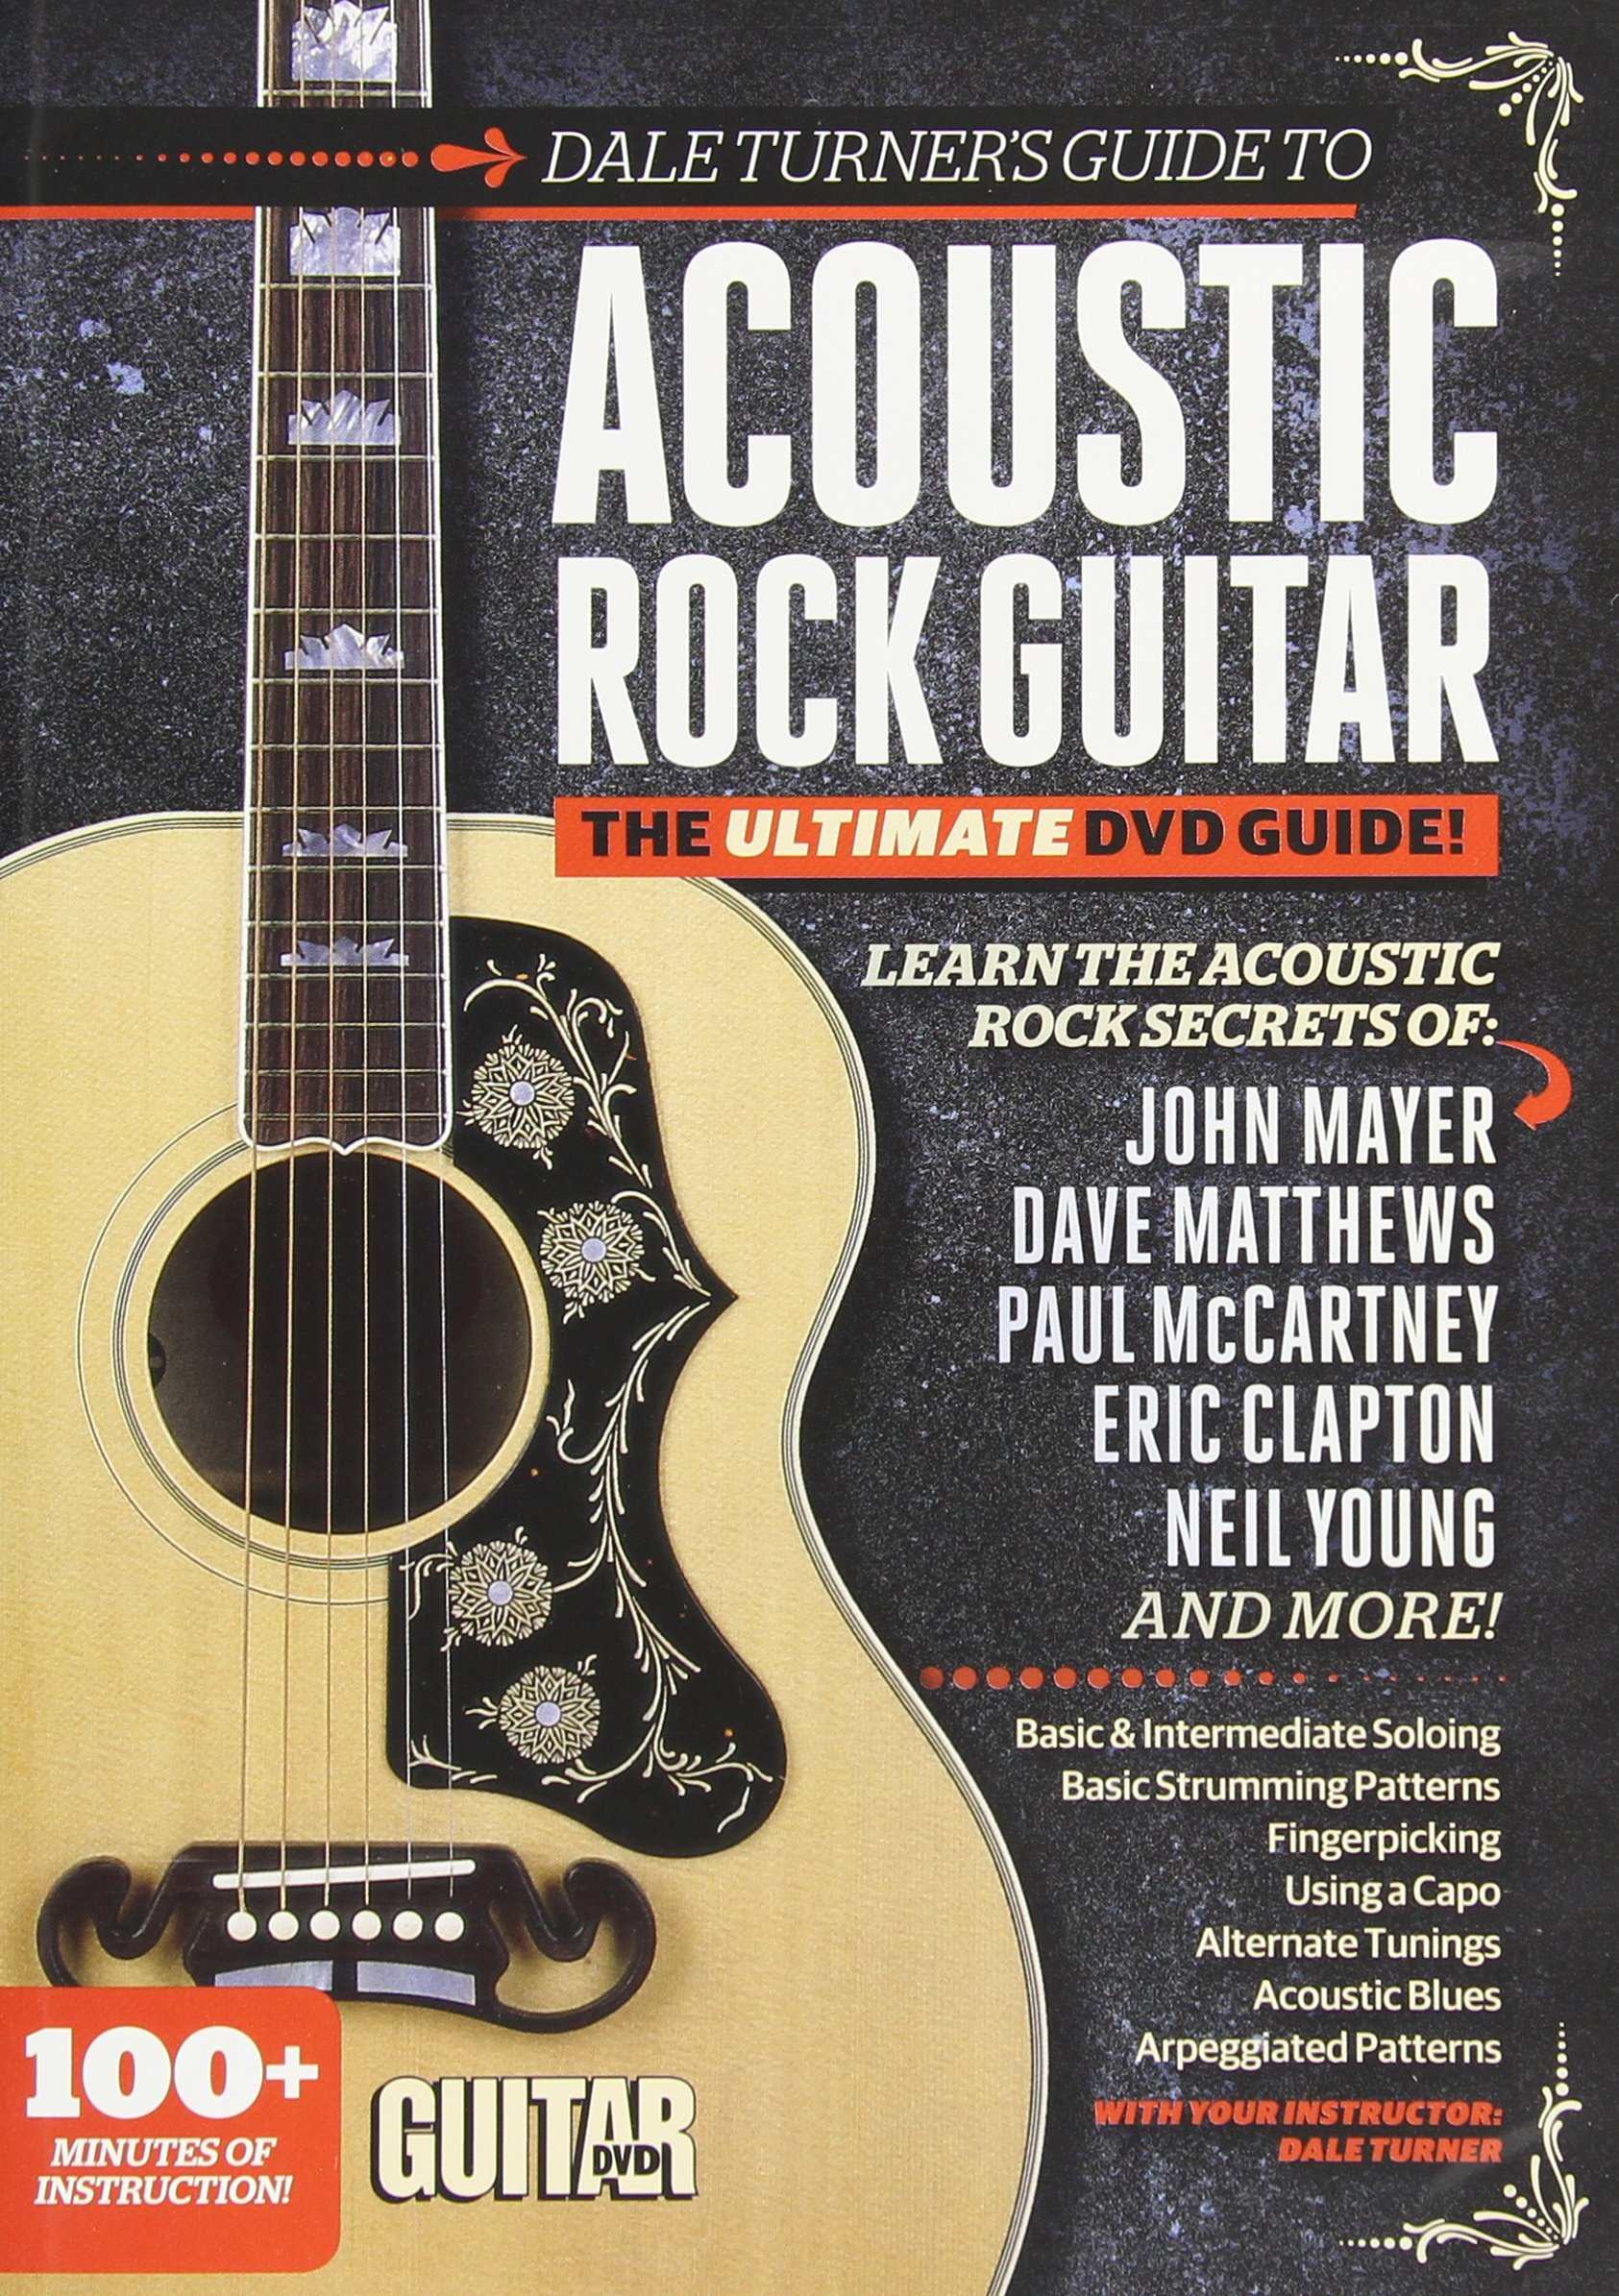 Dale Turner's Guide to Acoustic Rock Guitar: The Ultimate Dvd Guide